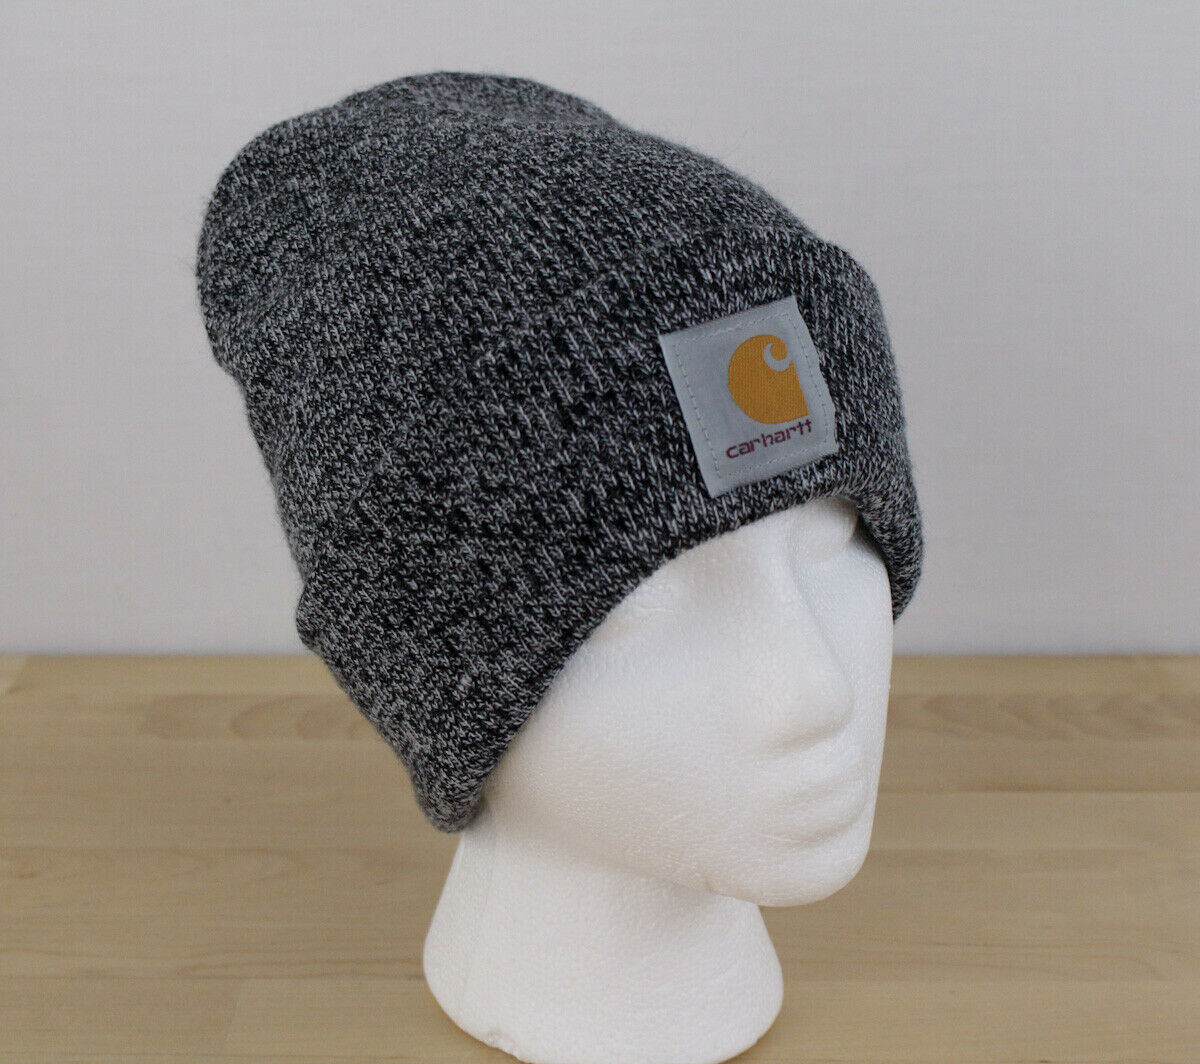 Primary image for Carhartt Toboggan Beanie Men's Gray Knit Acrylic Cuff A18 Hat Cap One Size